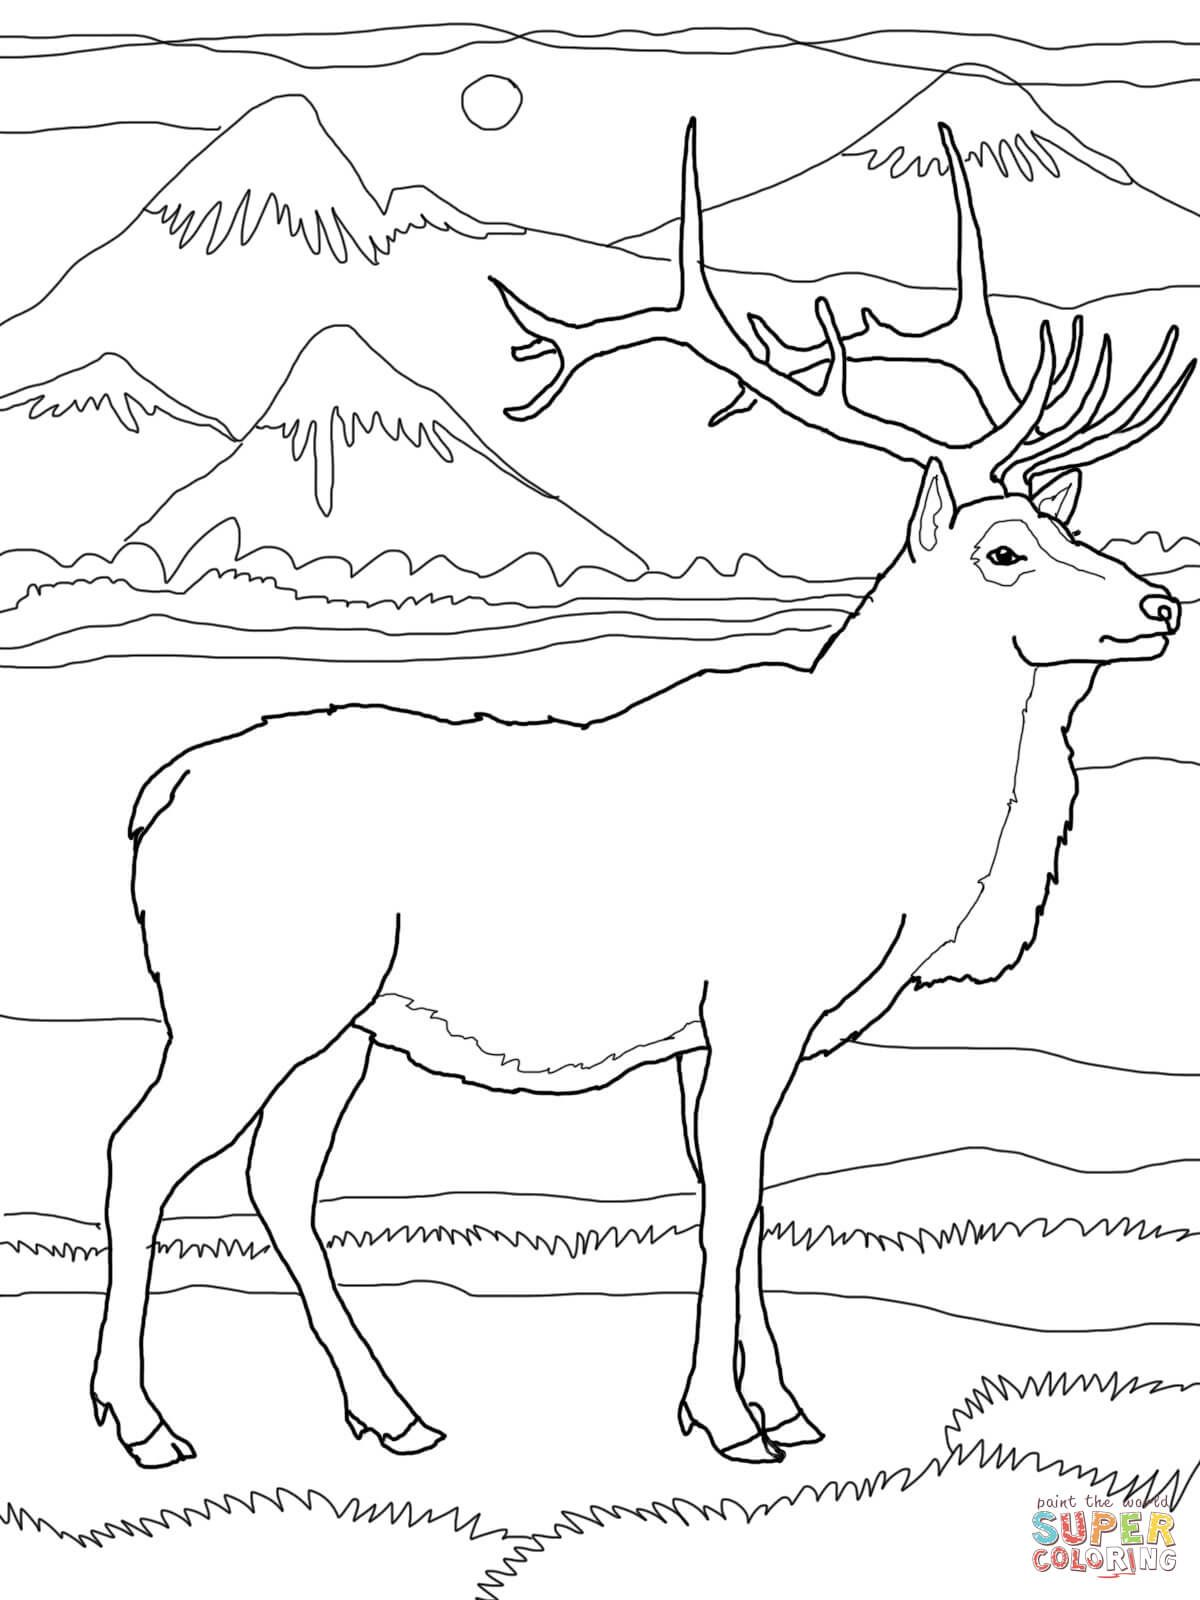 Elk Or Wapiti Coloring Page From Elk Category Select From 28106